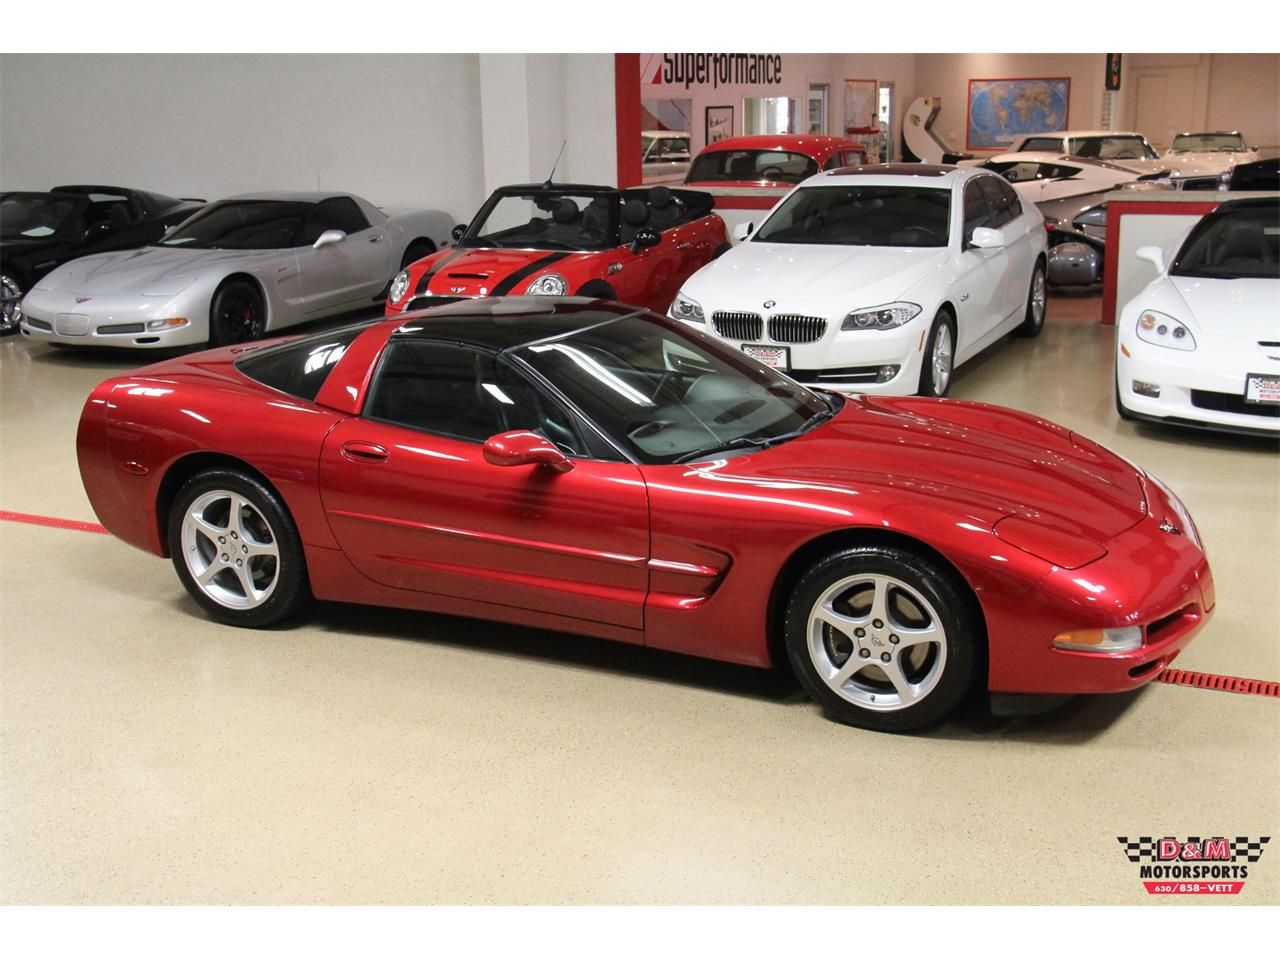 Large Picture of 2000 Corvette - $15,995.00 Offered by D & M Motorsports - LVA3